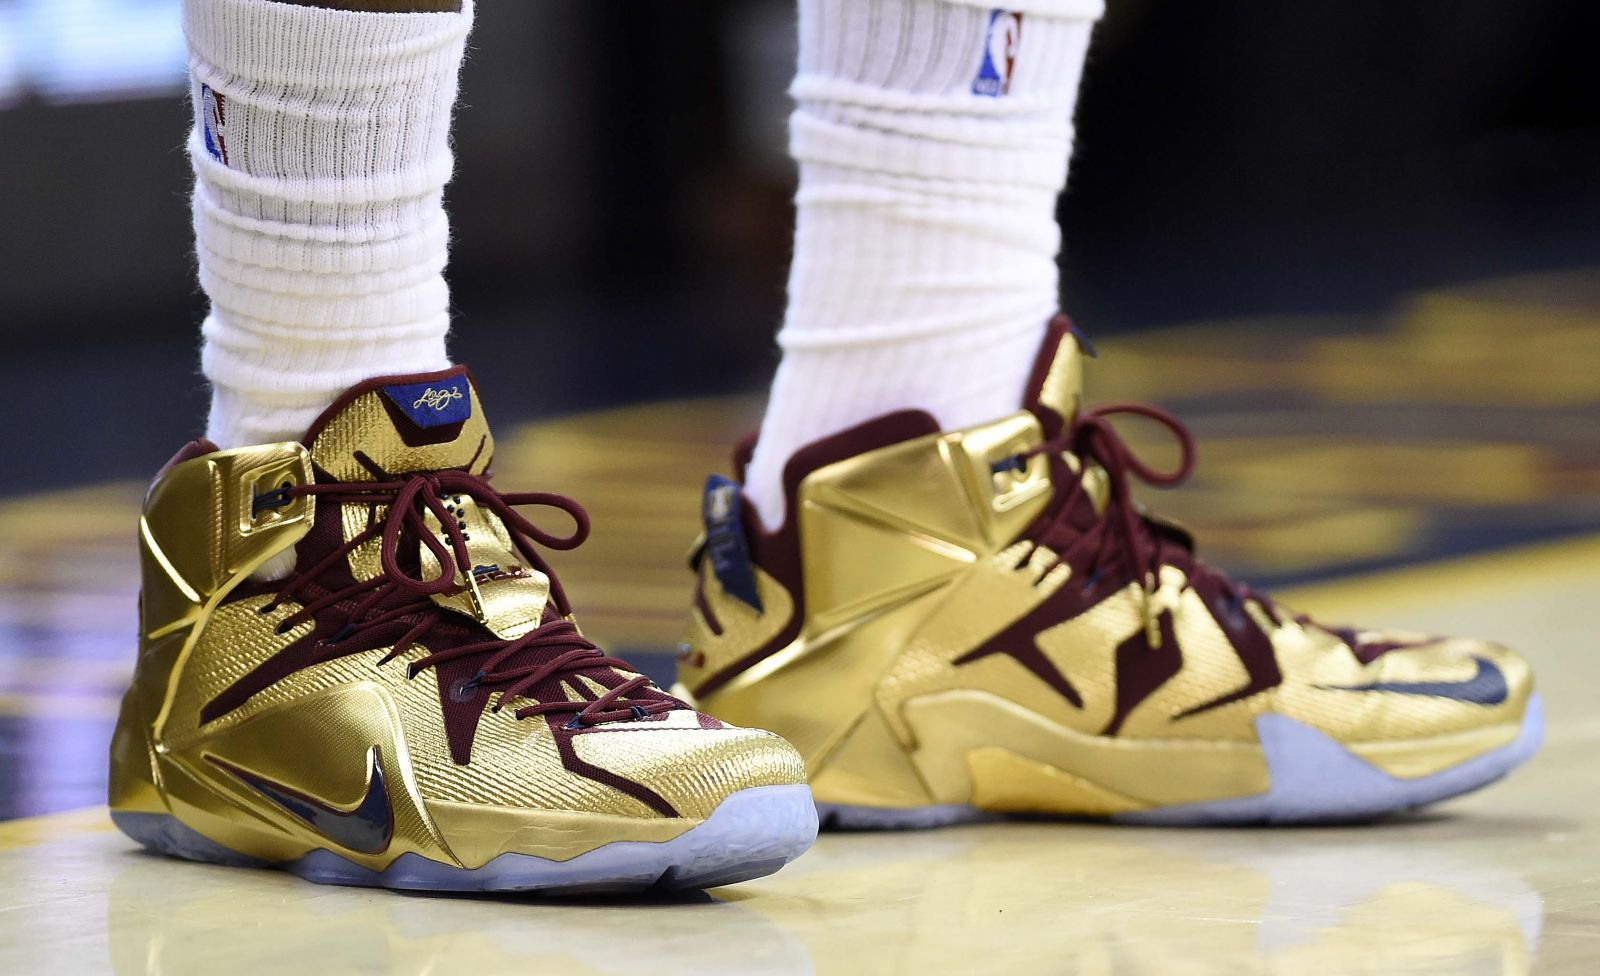 Gold Plated Lebron James Shoes S